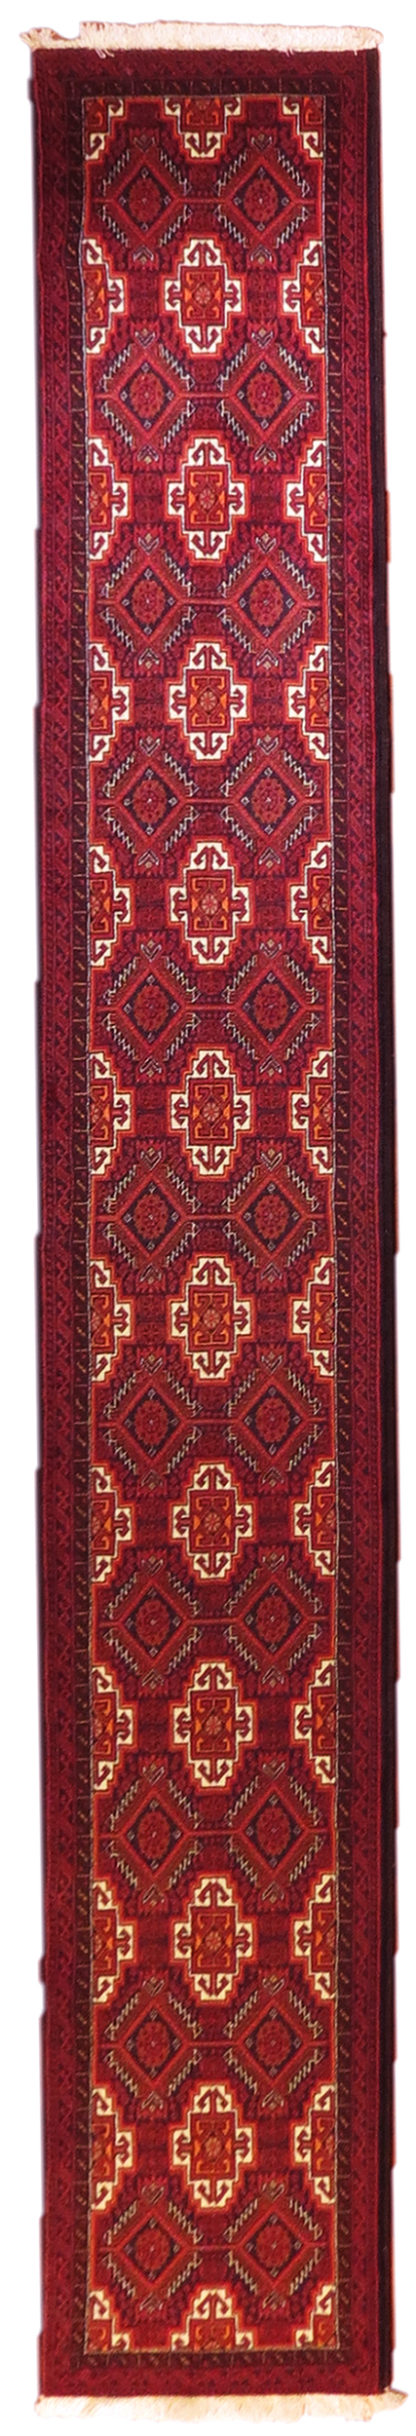 Persian Baluch Runner 2×12 Red Brown Wool Area Rug